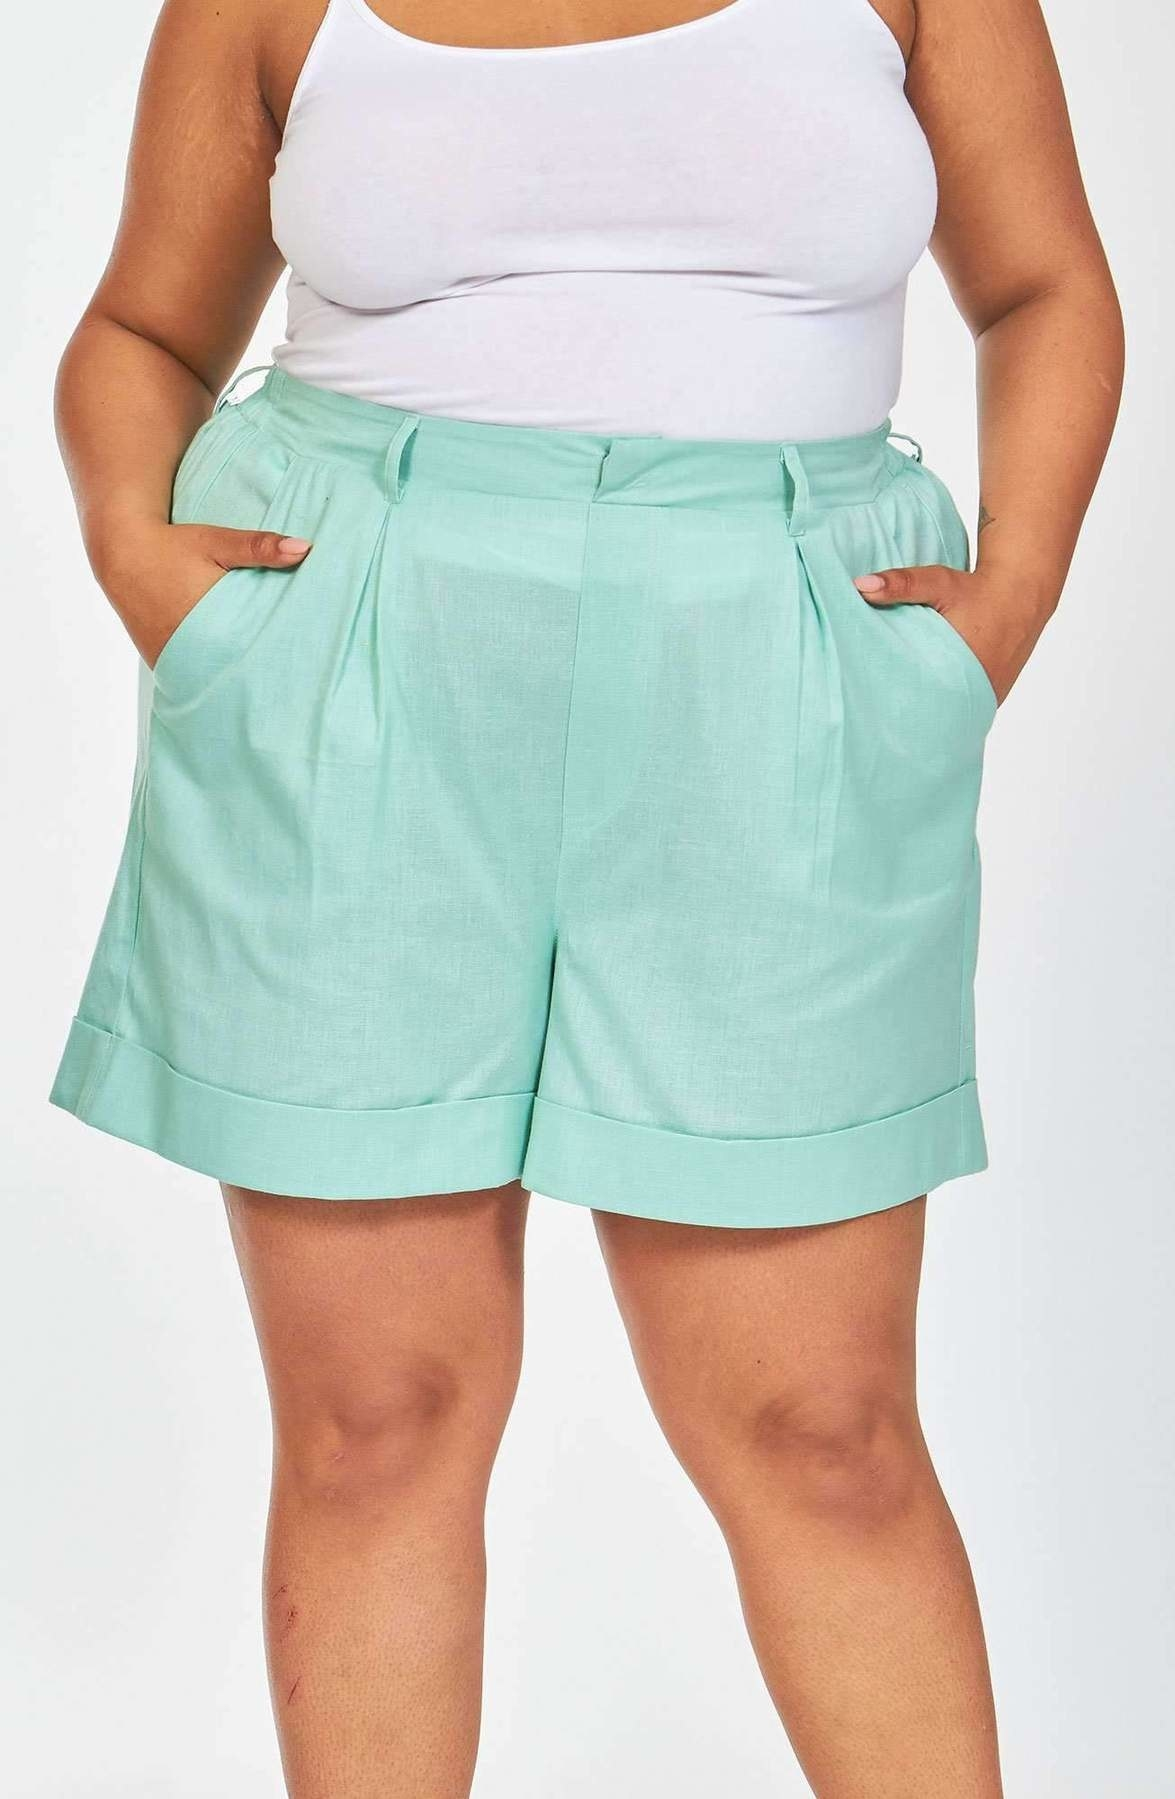 Model wearing shorts with folded hem, pleated front, and side pockets in teal.